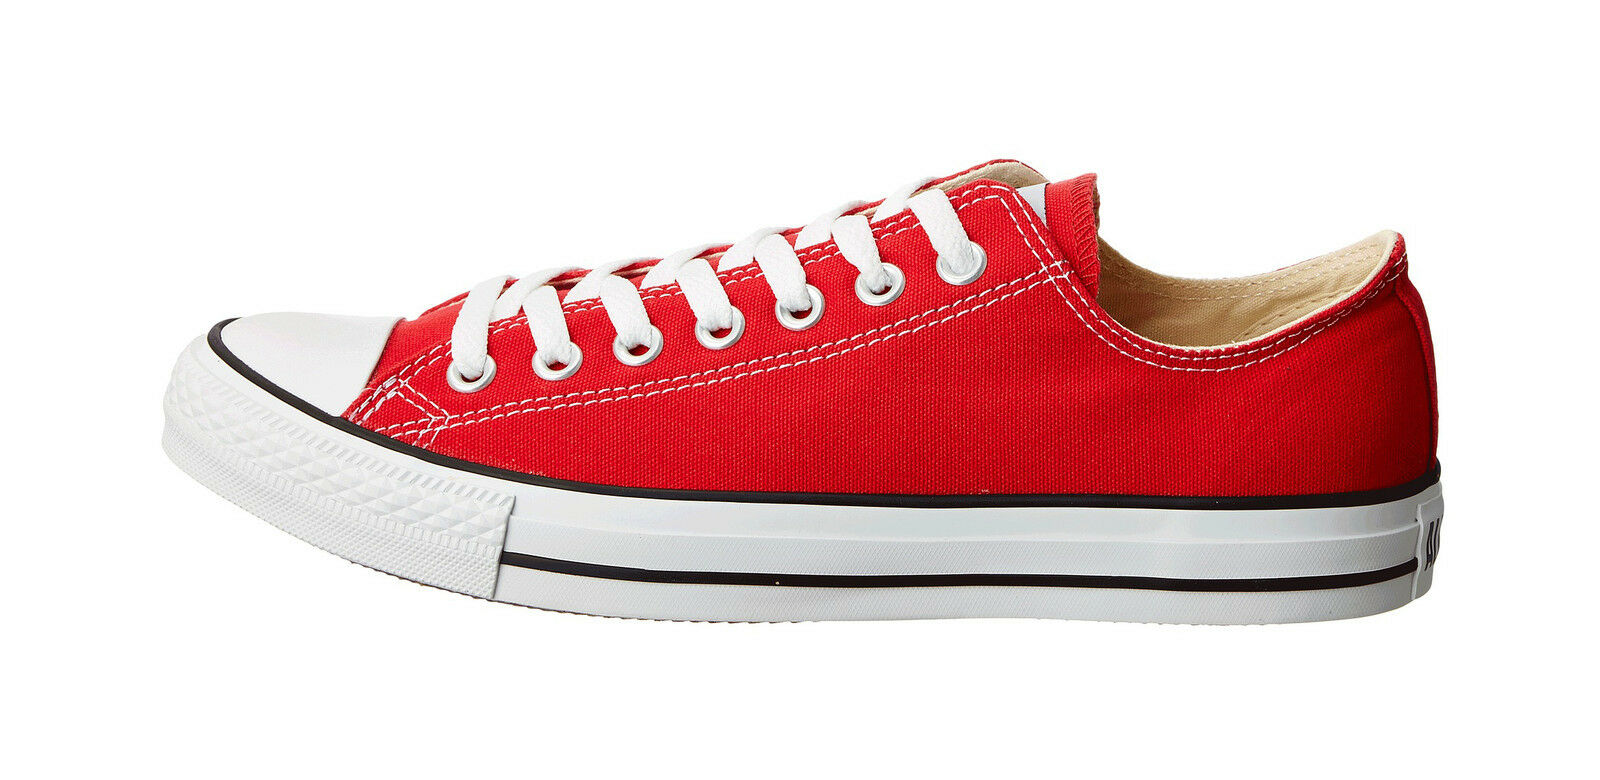 CONVERSE Chuck Taylor All Star shoes Low Top Red Classic Women Sneakers M9696